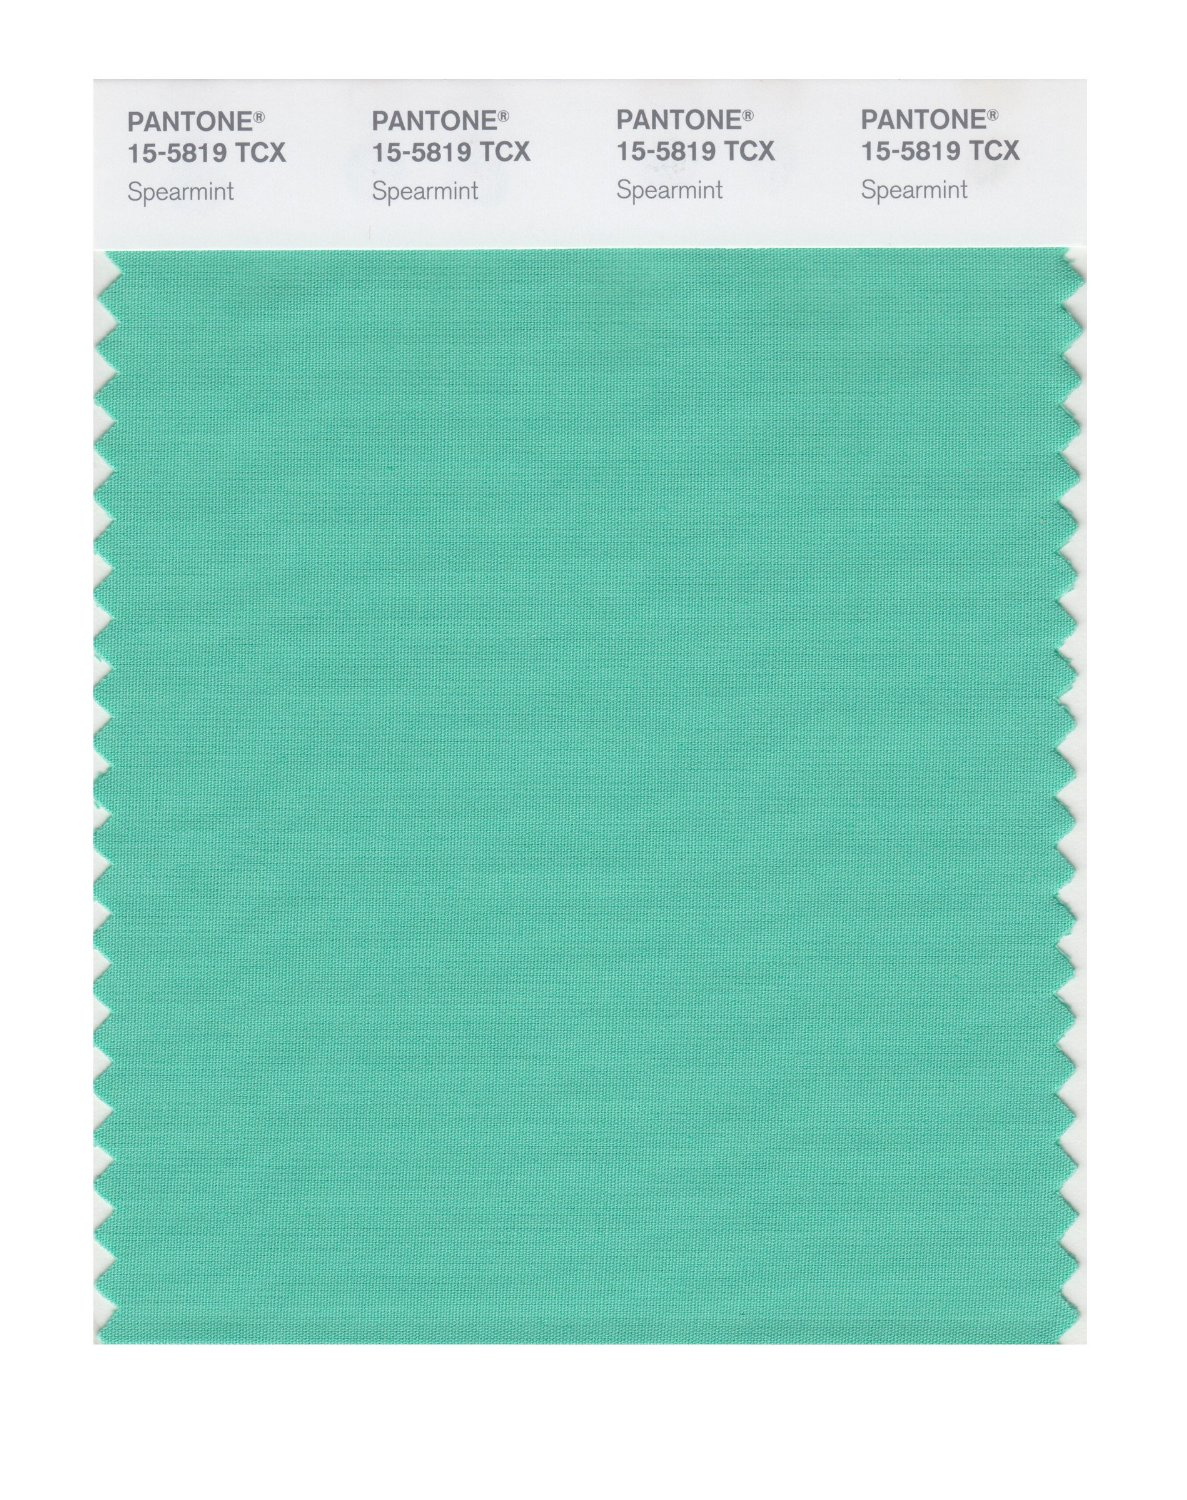 Pantone Smart Swatch 15-5819 Spearmint